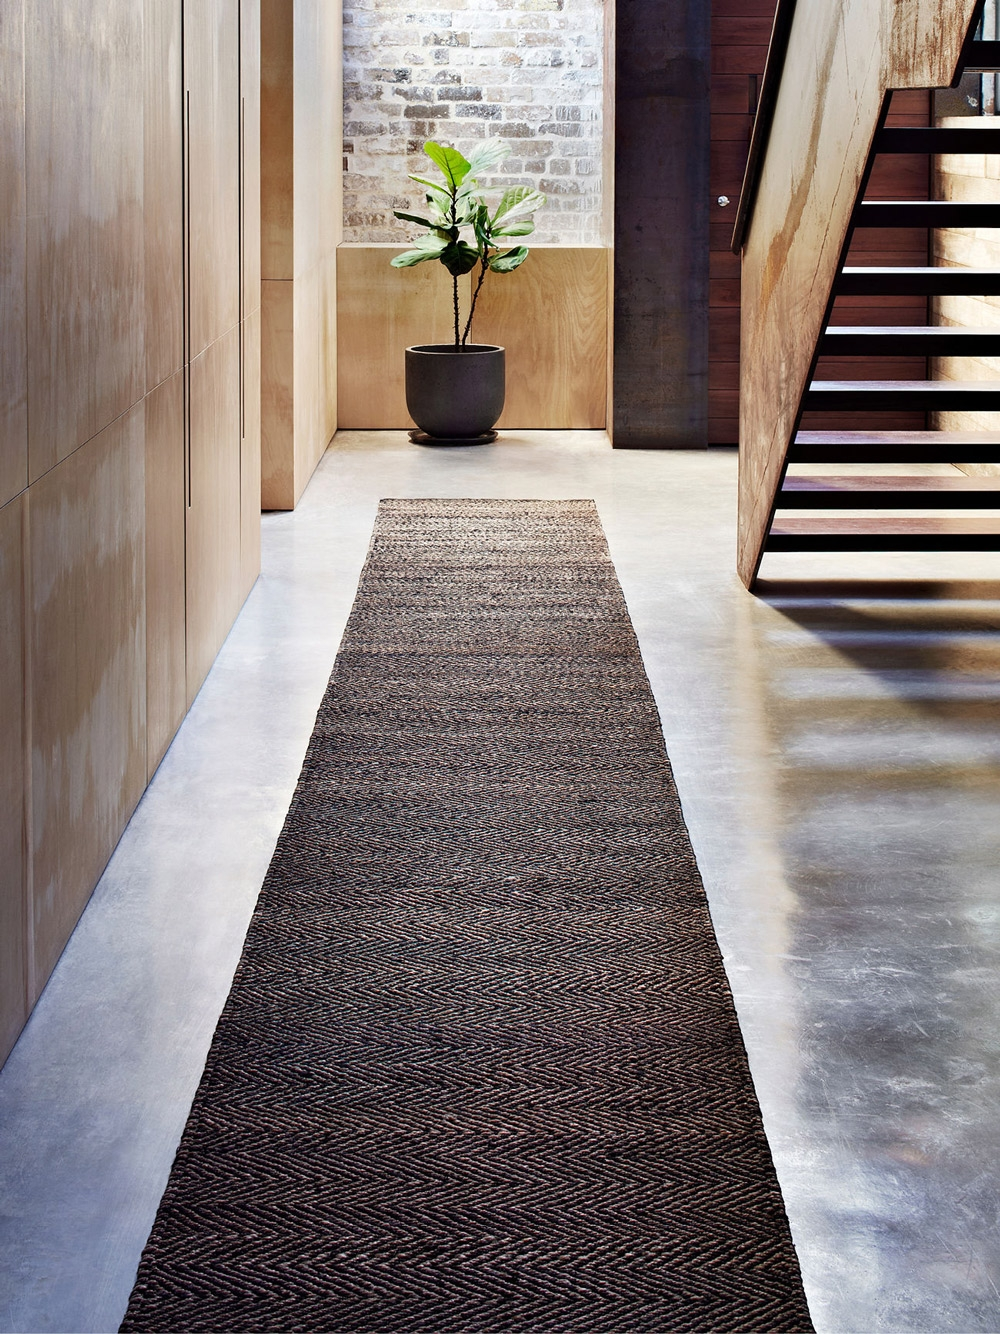 15 Inspirations Entrance Runners Area Rugs Ideas